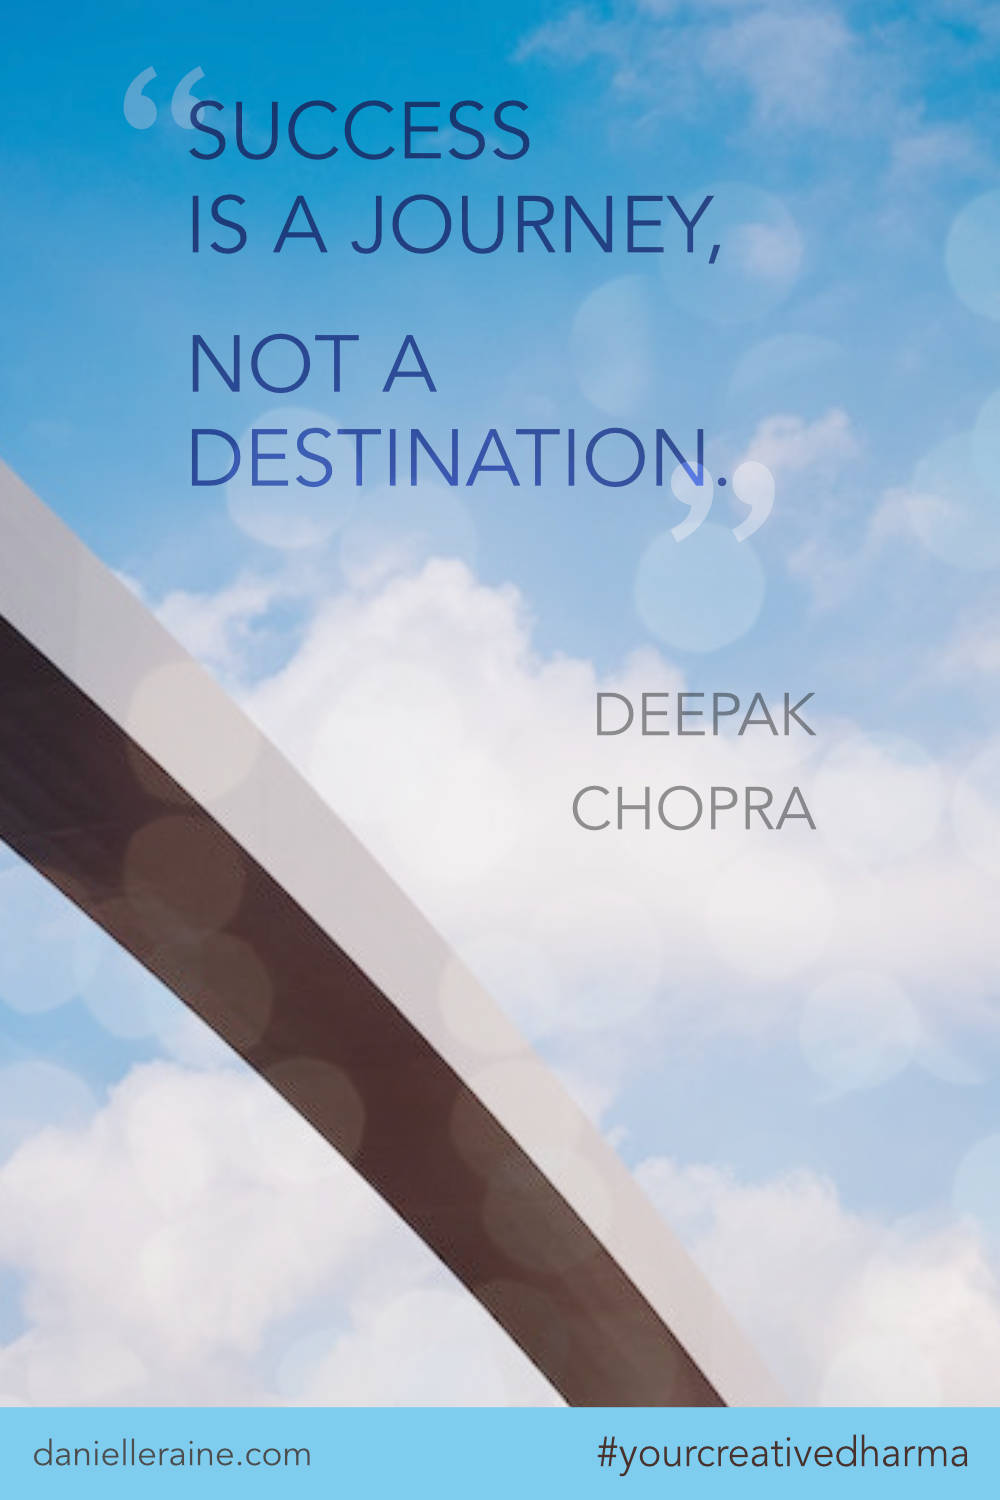 Your Creative Dharma quote deepak chopra success is a journey